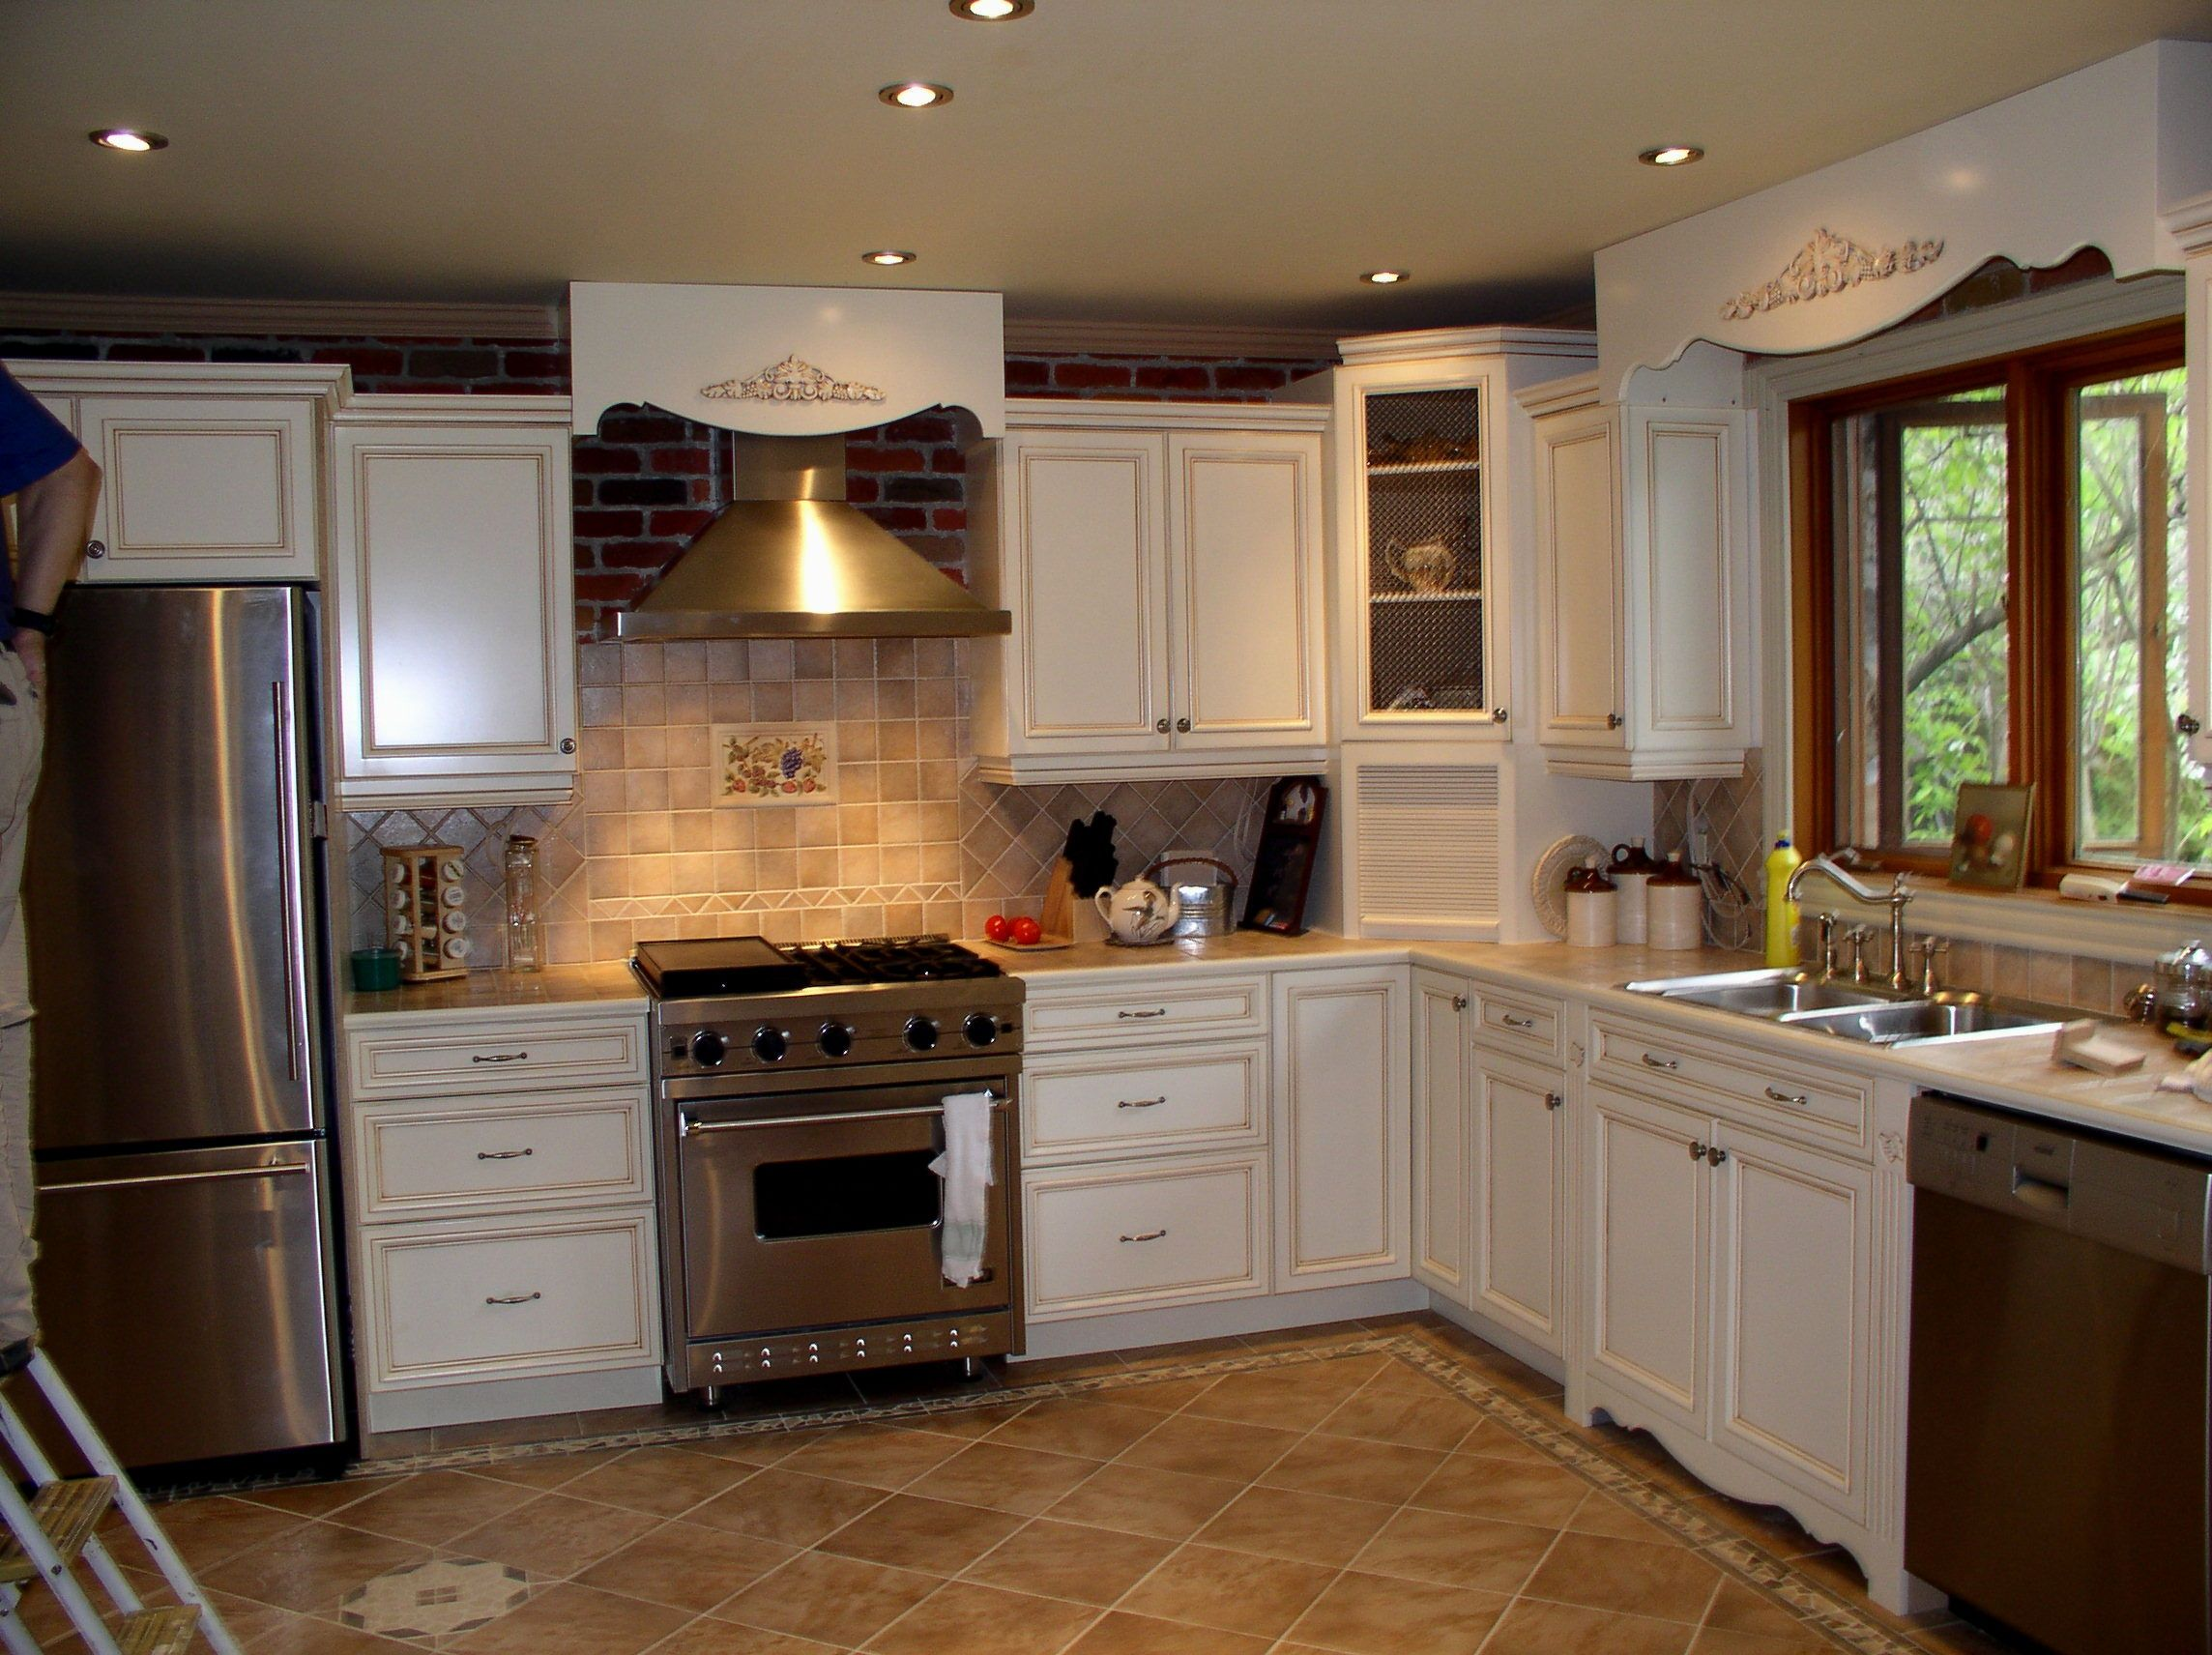 White Kitchen Cabinets Brown Tile Floor Cheap Kitchen Remodel Kitchen Flooring Trends Kitchen Remodel Small